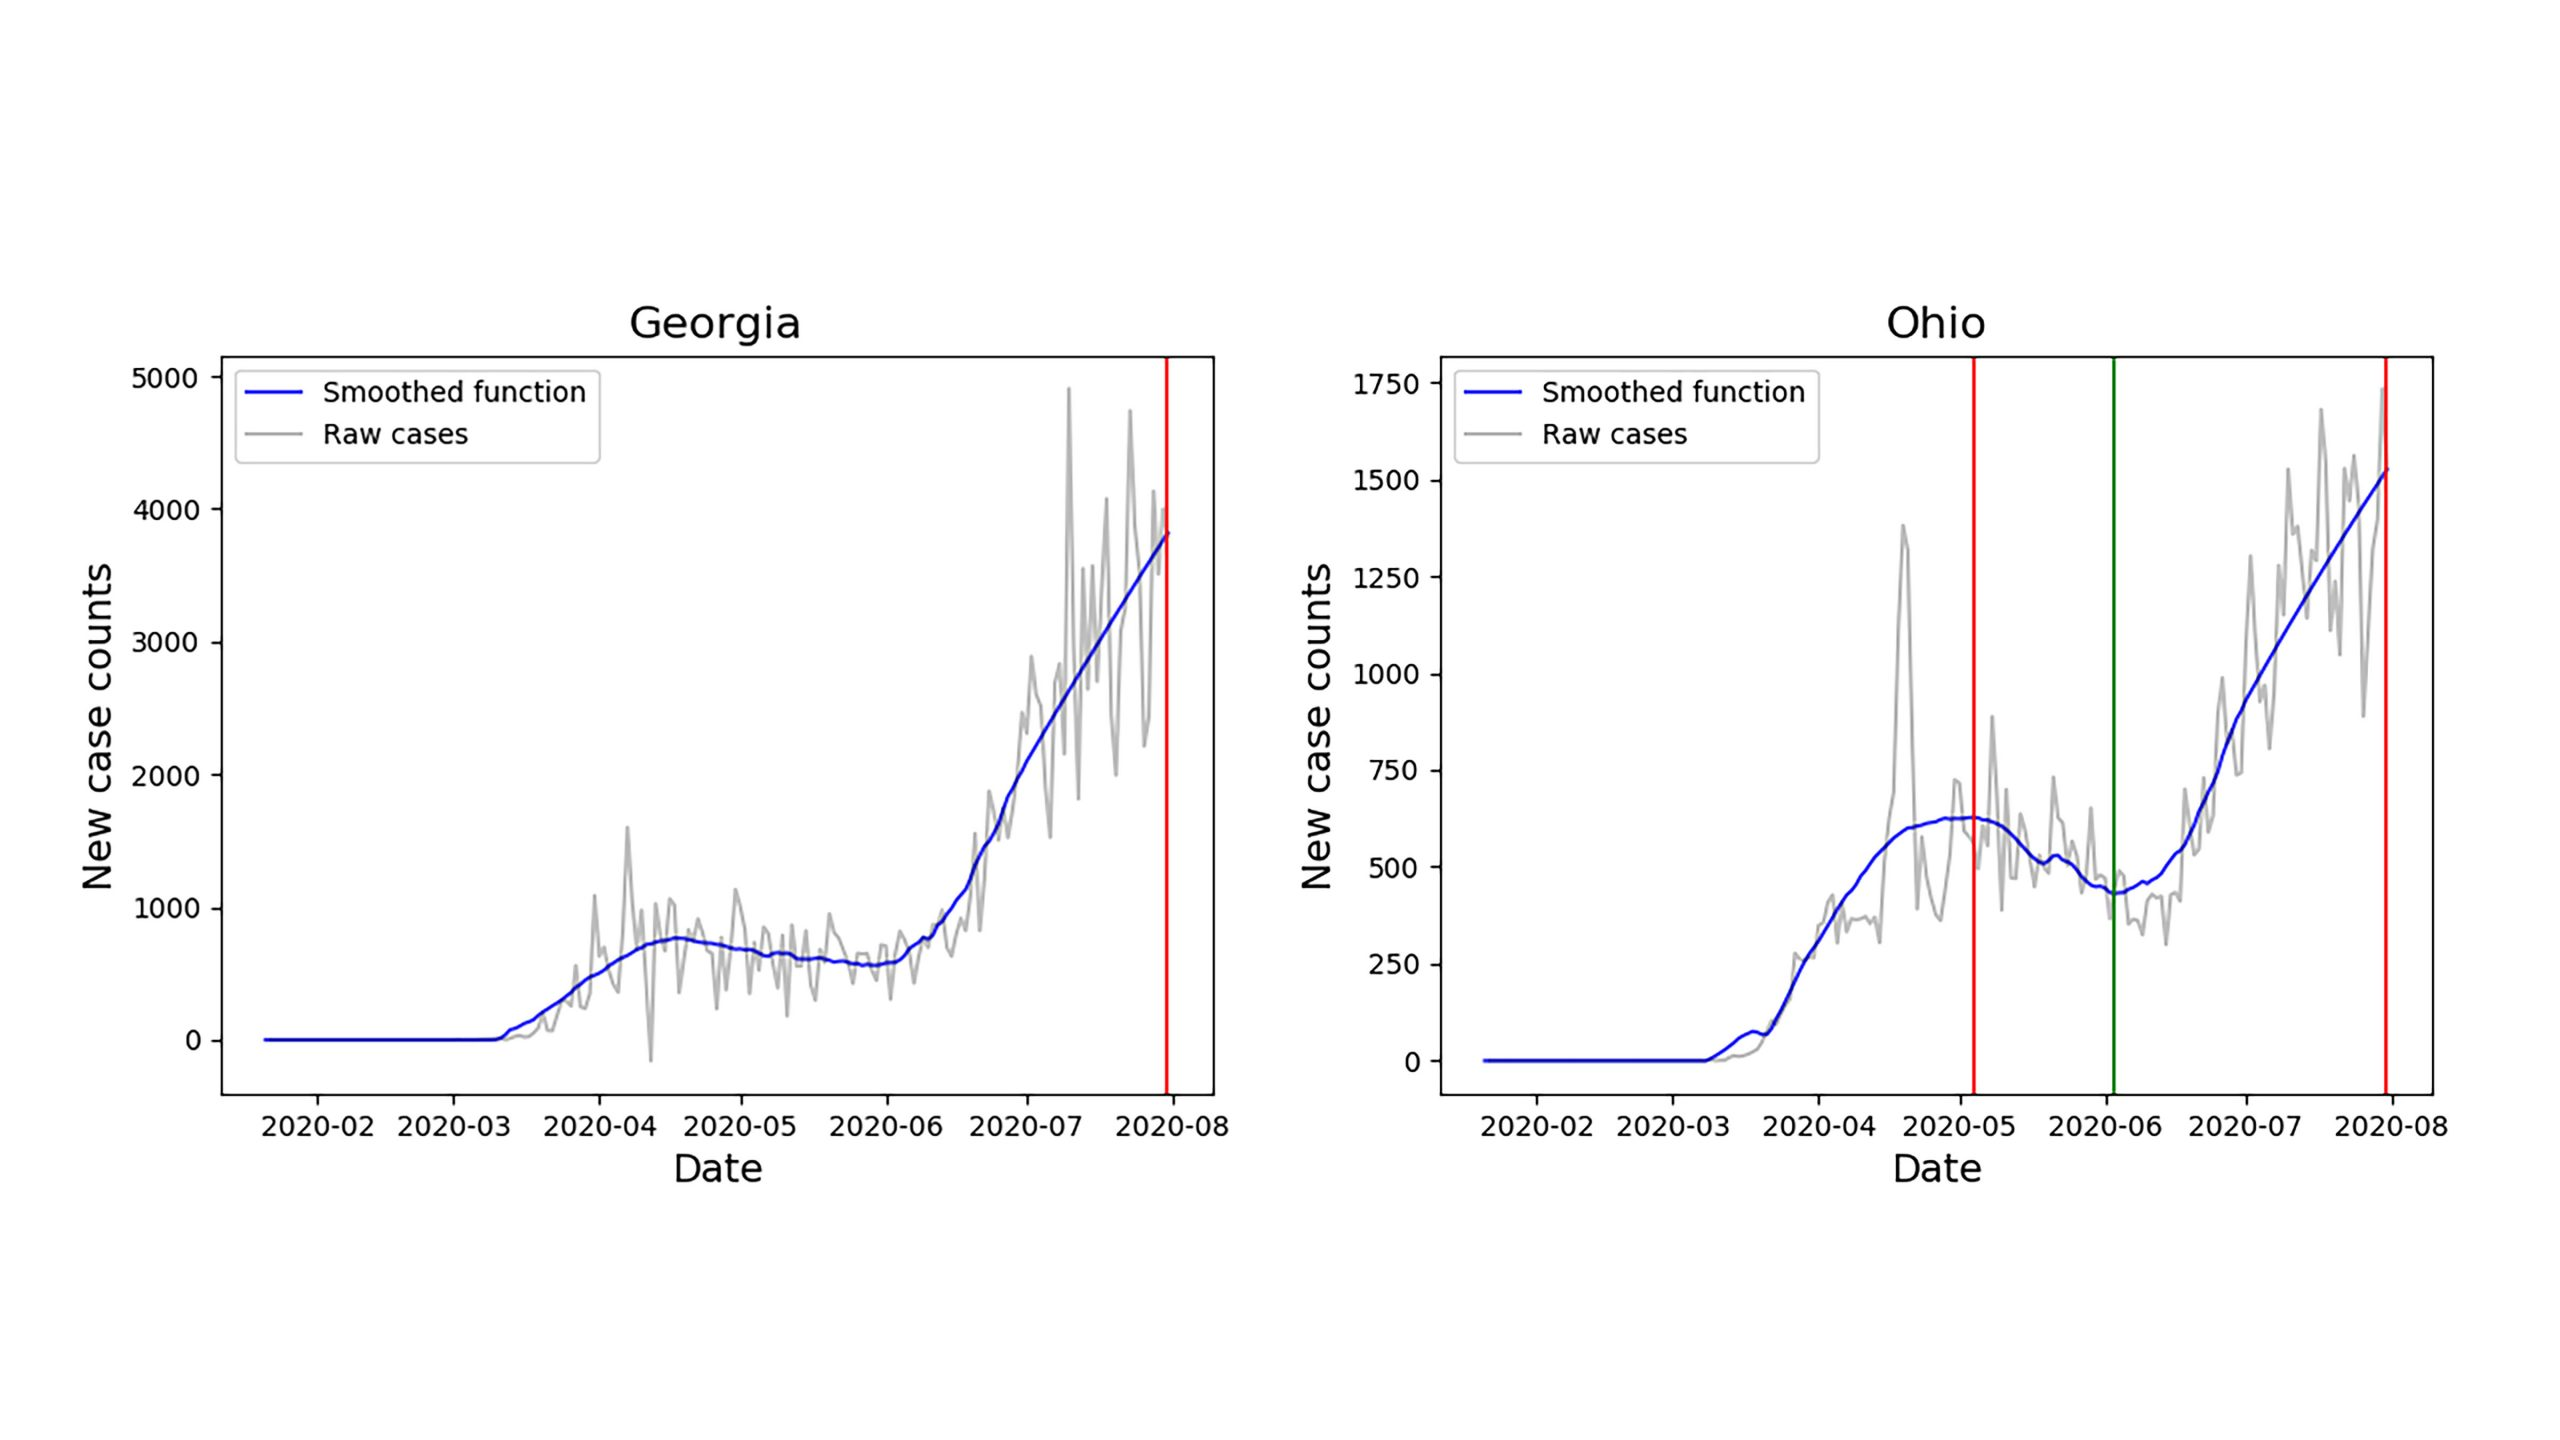 """Smoothed time series and identified turning points for Georgia and Ohio. Through the identification of """"true"""" turning points, Georgia is determined to be in its first wave, while Ohio is determined to be in its second wave. Both states exhibit their greatest case counts (up to smoothing) on the final day of analysis. Exact daily counts vary depending on source and the date the data was accessed. CREDIT: Nick James and Max Menzies"""